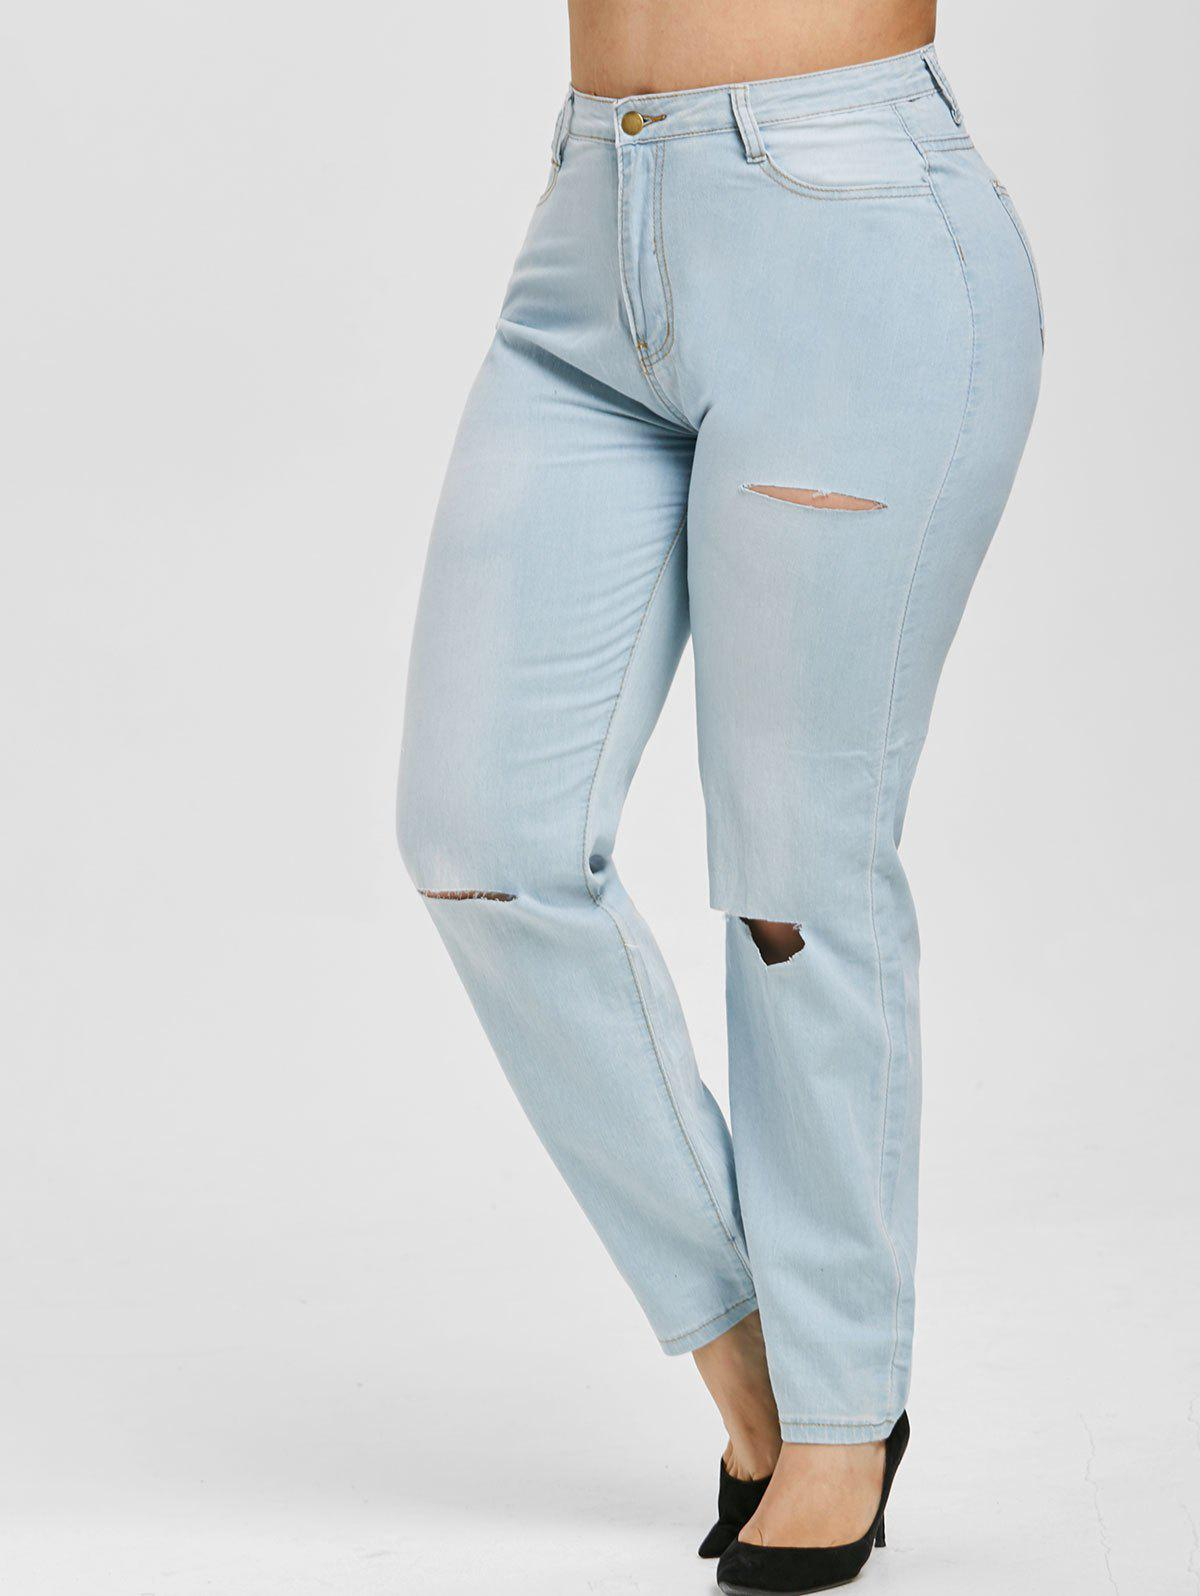 Distressed Cutout High Waisted Plus Size Skinny Jeans - LIGHT BLUE 5XL